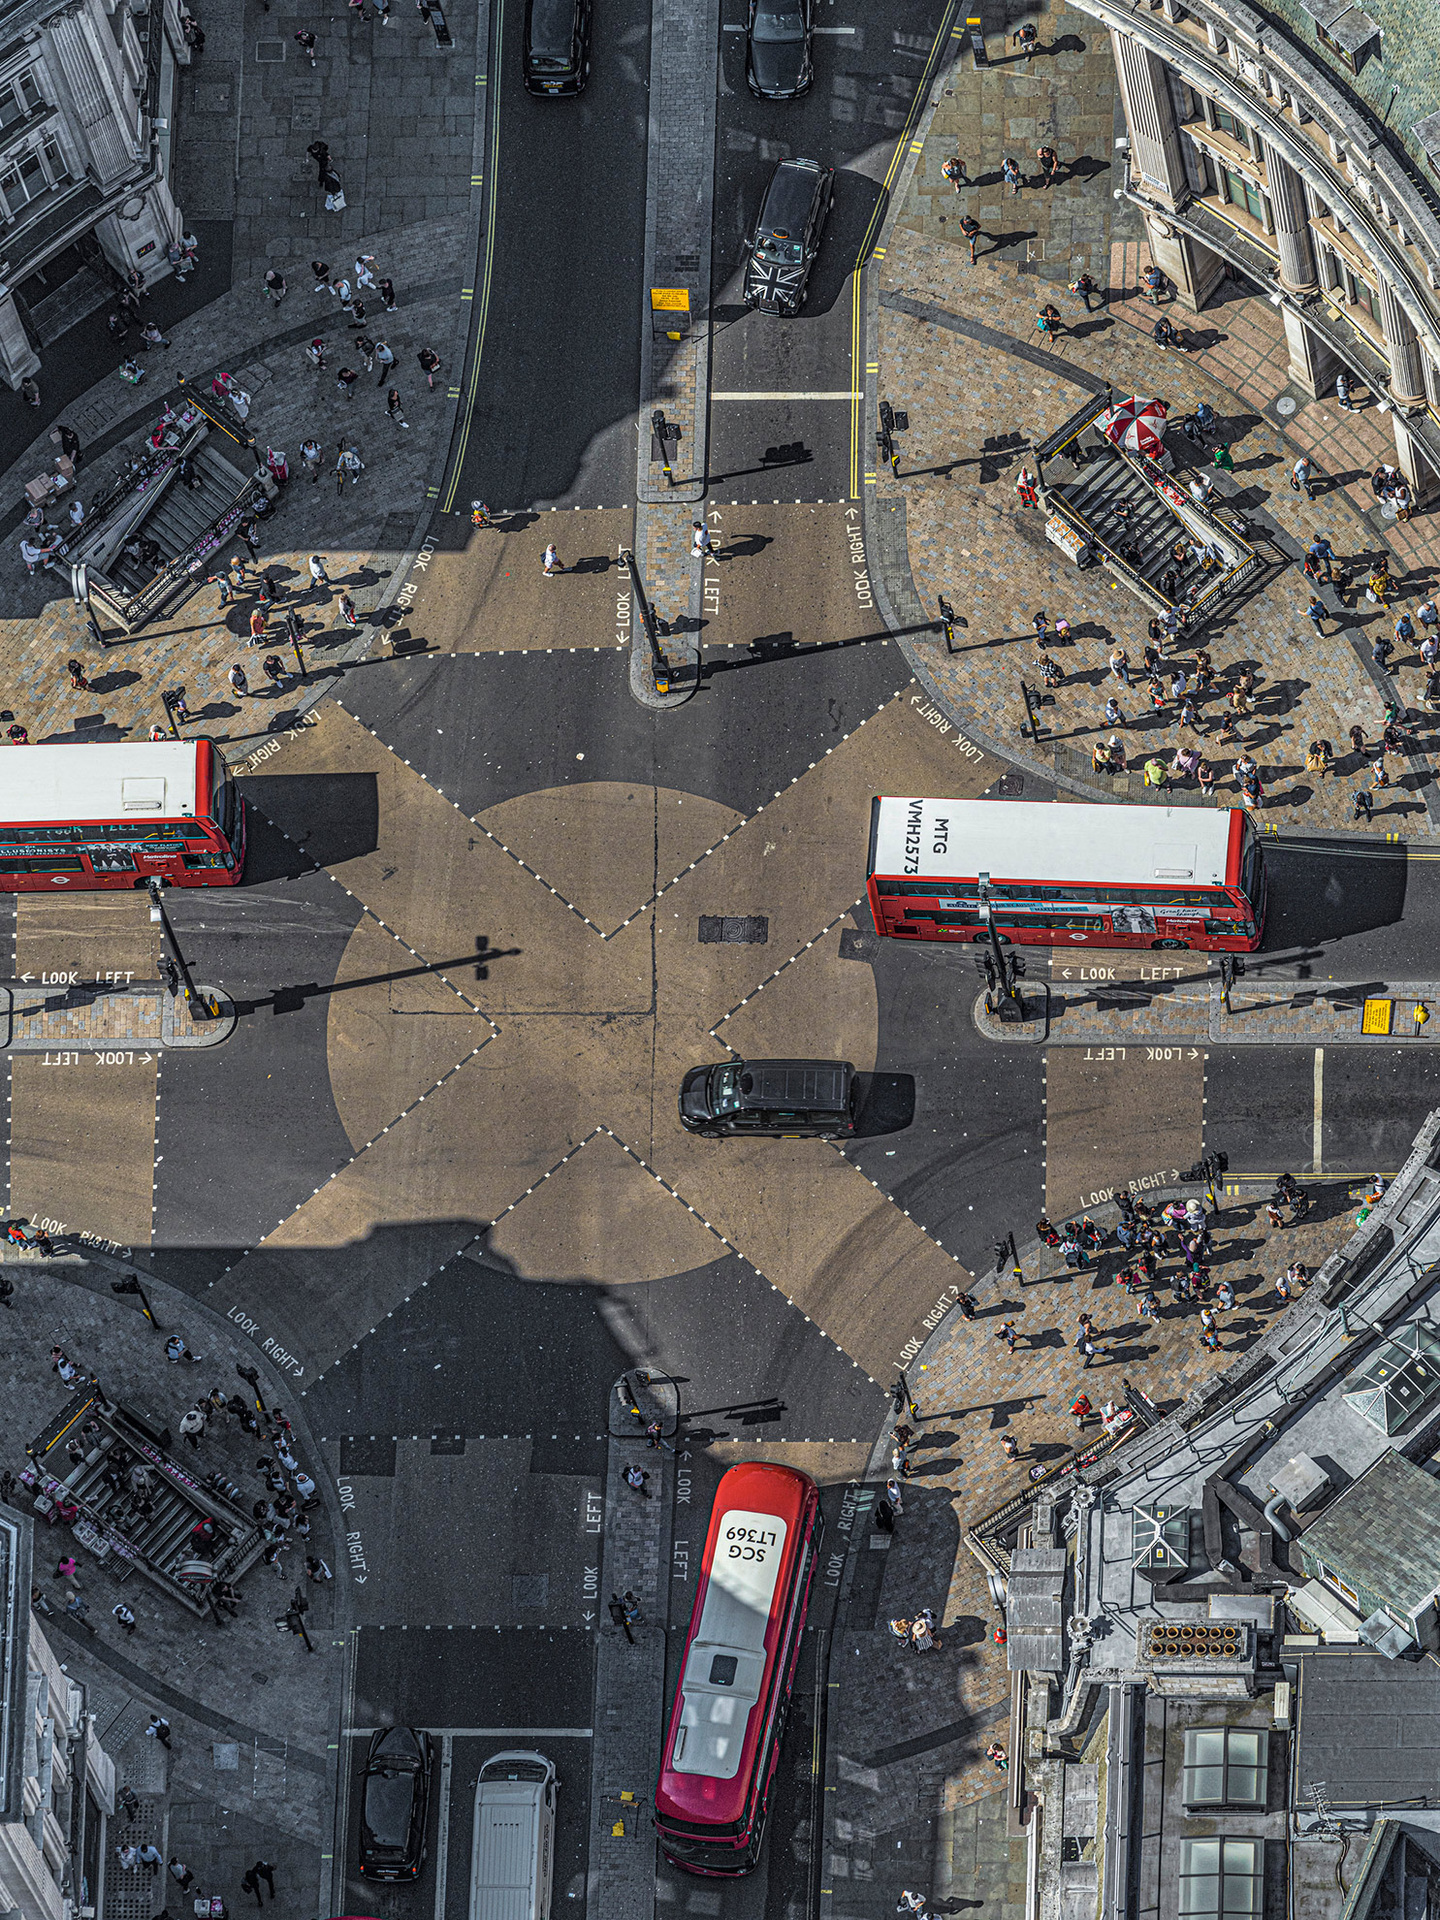 © Bernhard Lang. Aerial Views: London. 2019. OXFORD-CIRCUS